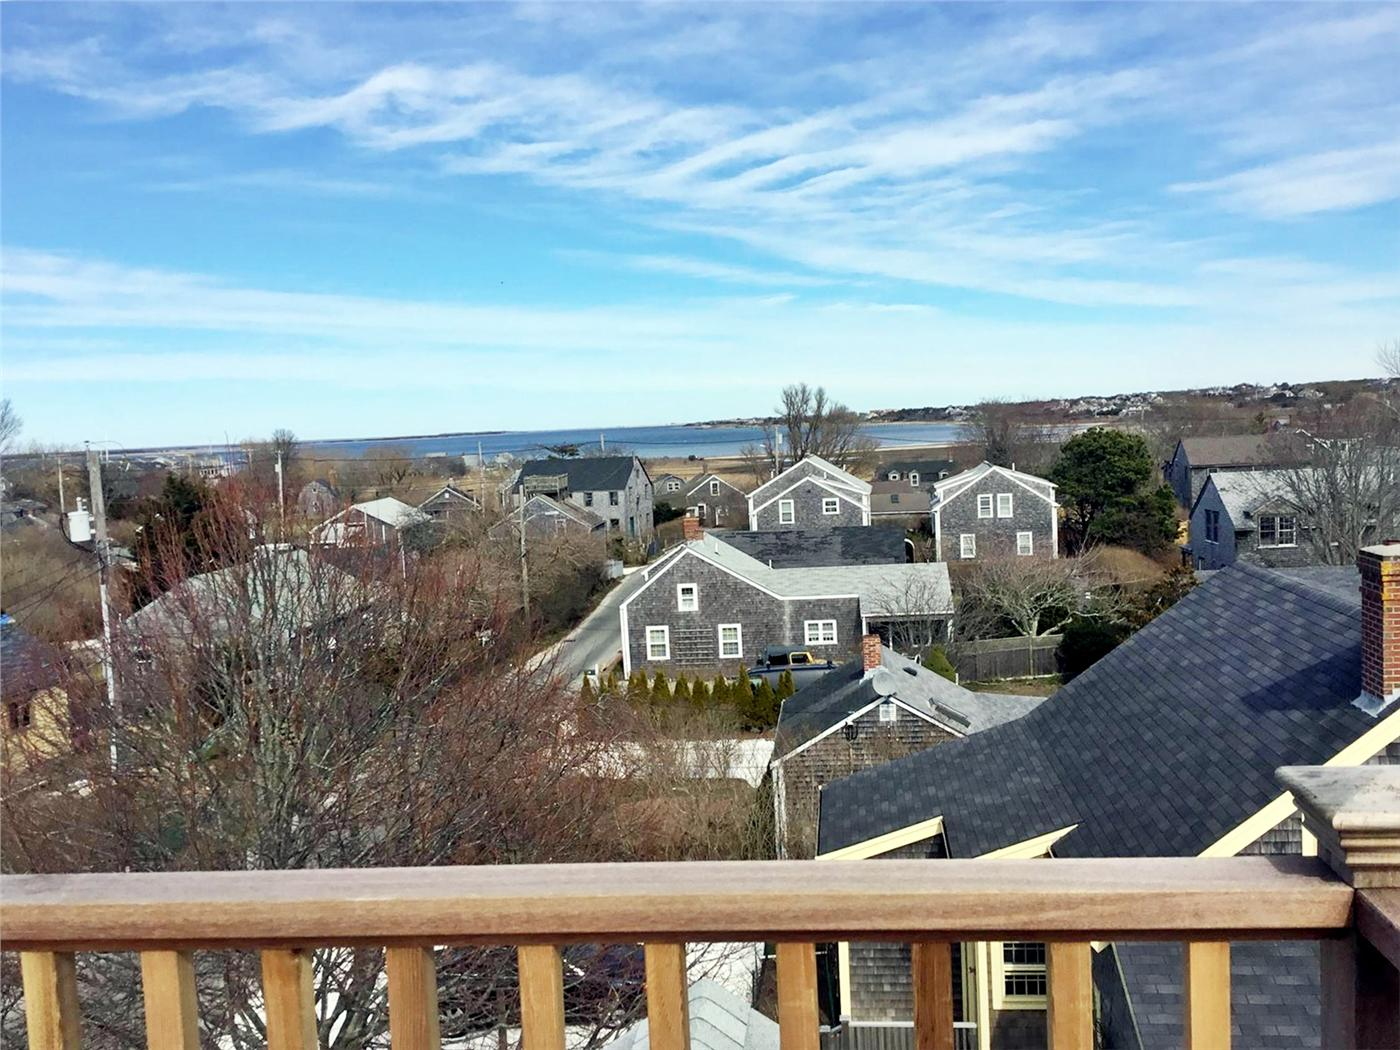 Nantucket Town Vacation Rental Home In Nantucket Ma 02554 1 2 Mile To Children S Beach 1 8